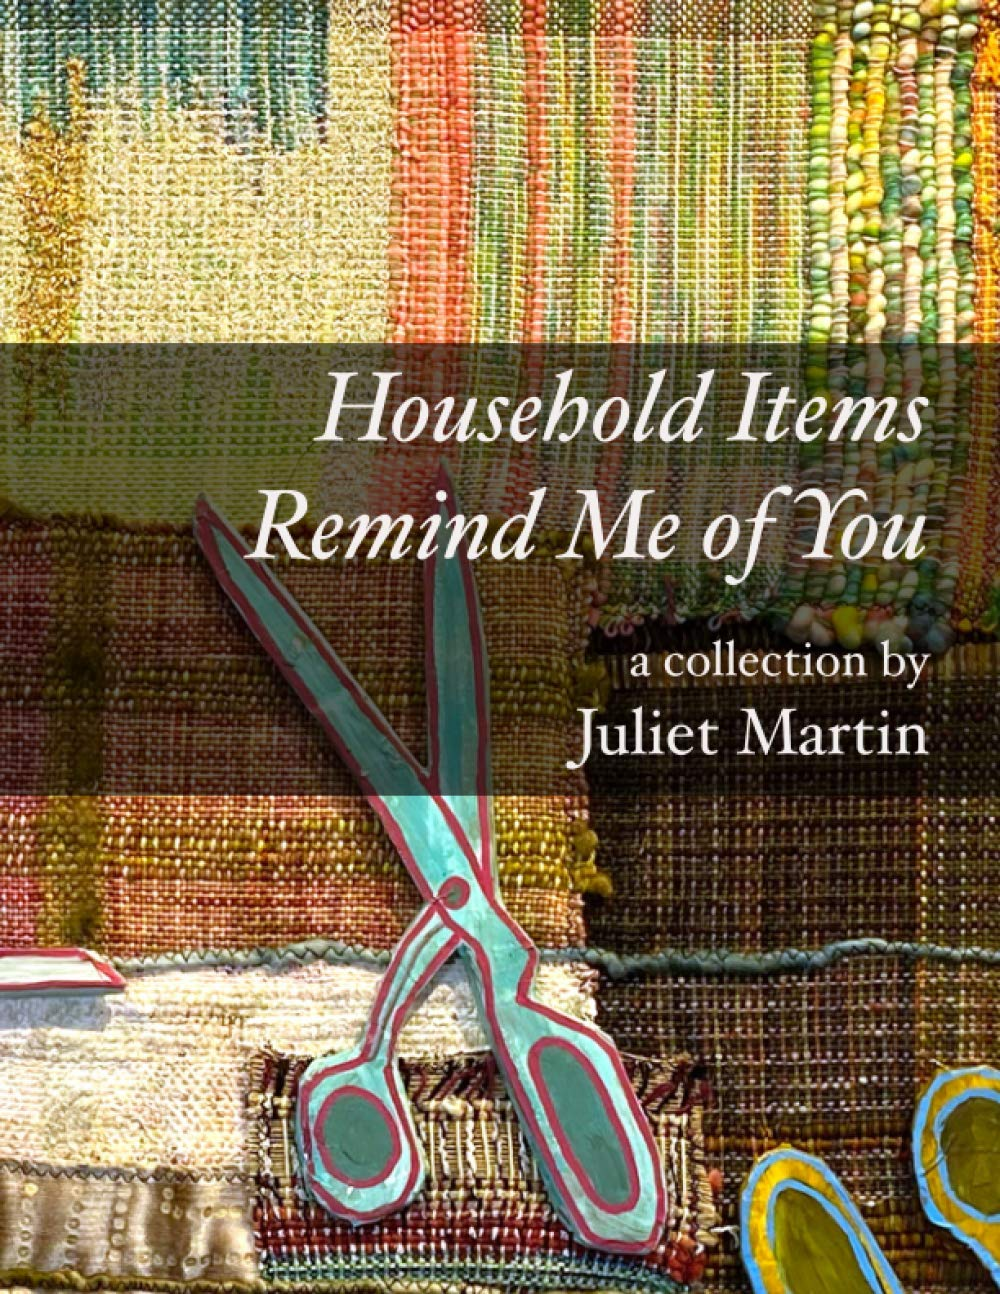 Household Items Remind Me of You: Martin, Juliet: 9798739808448